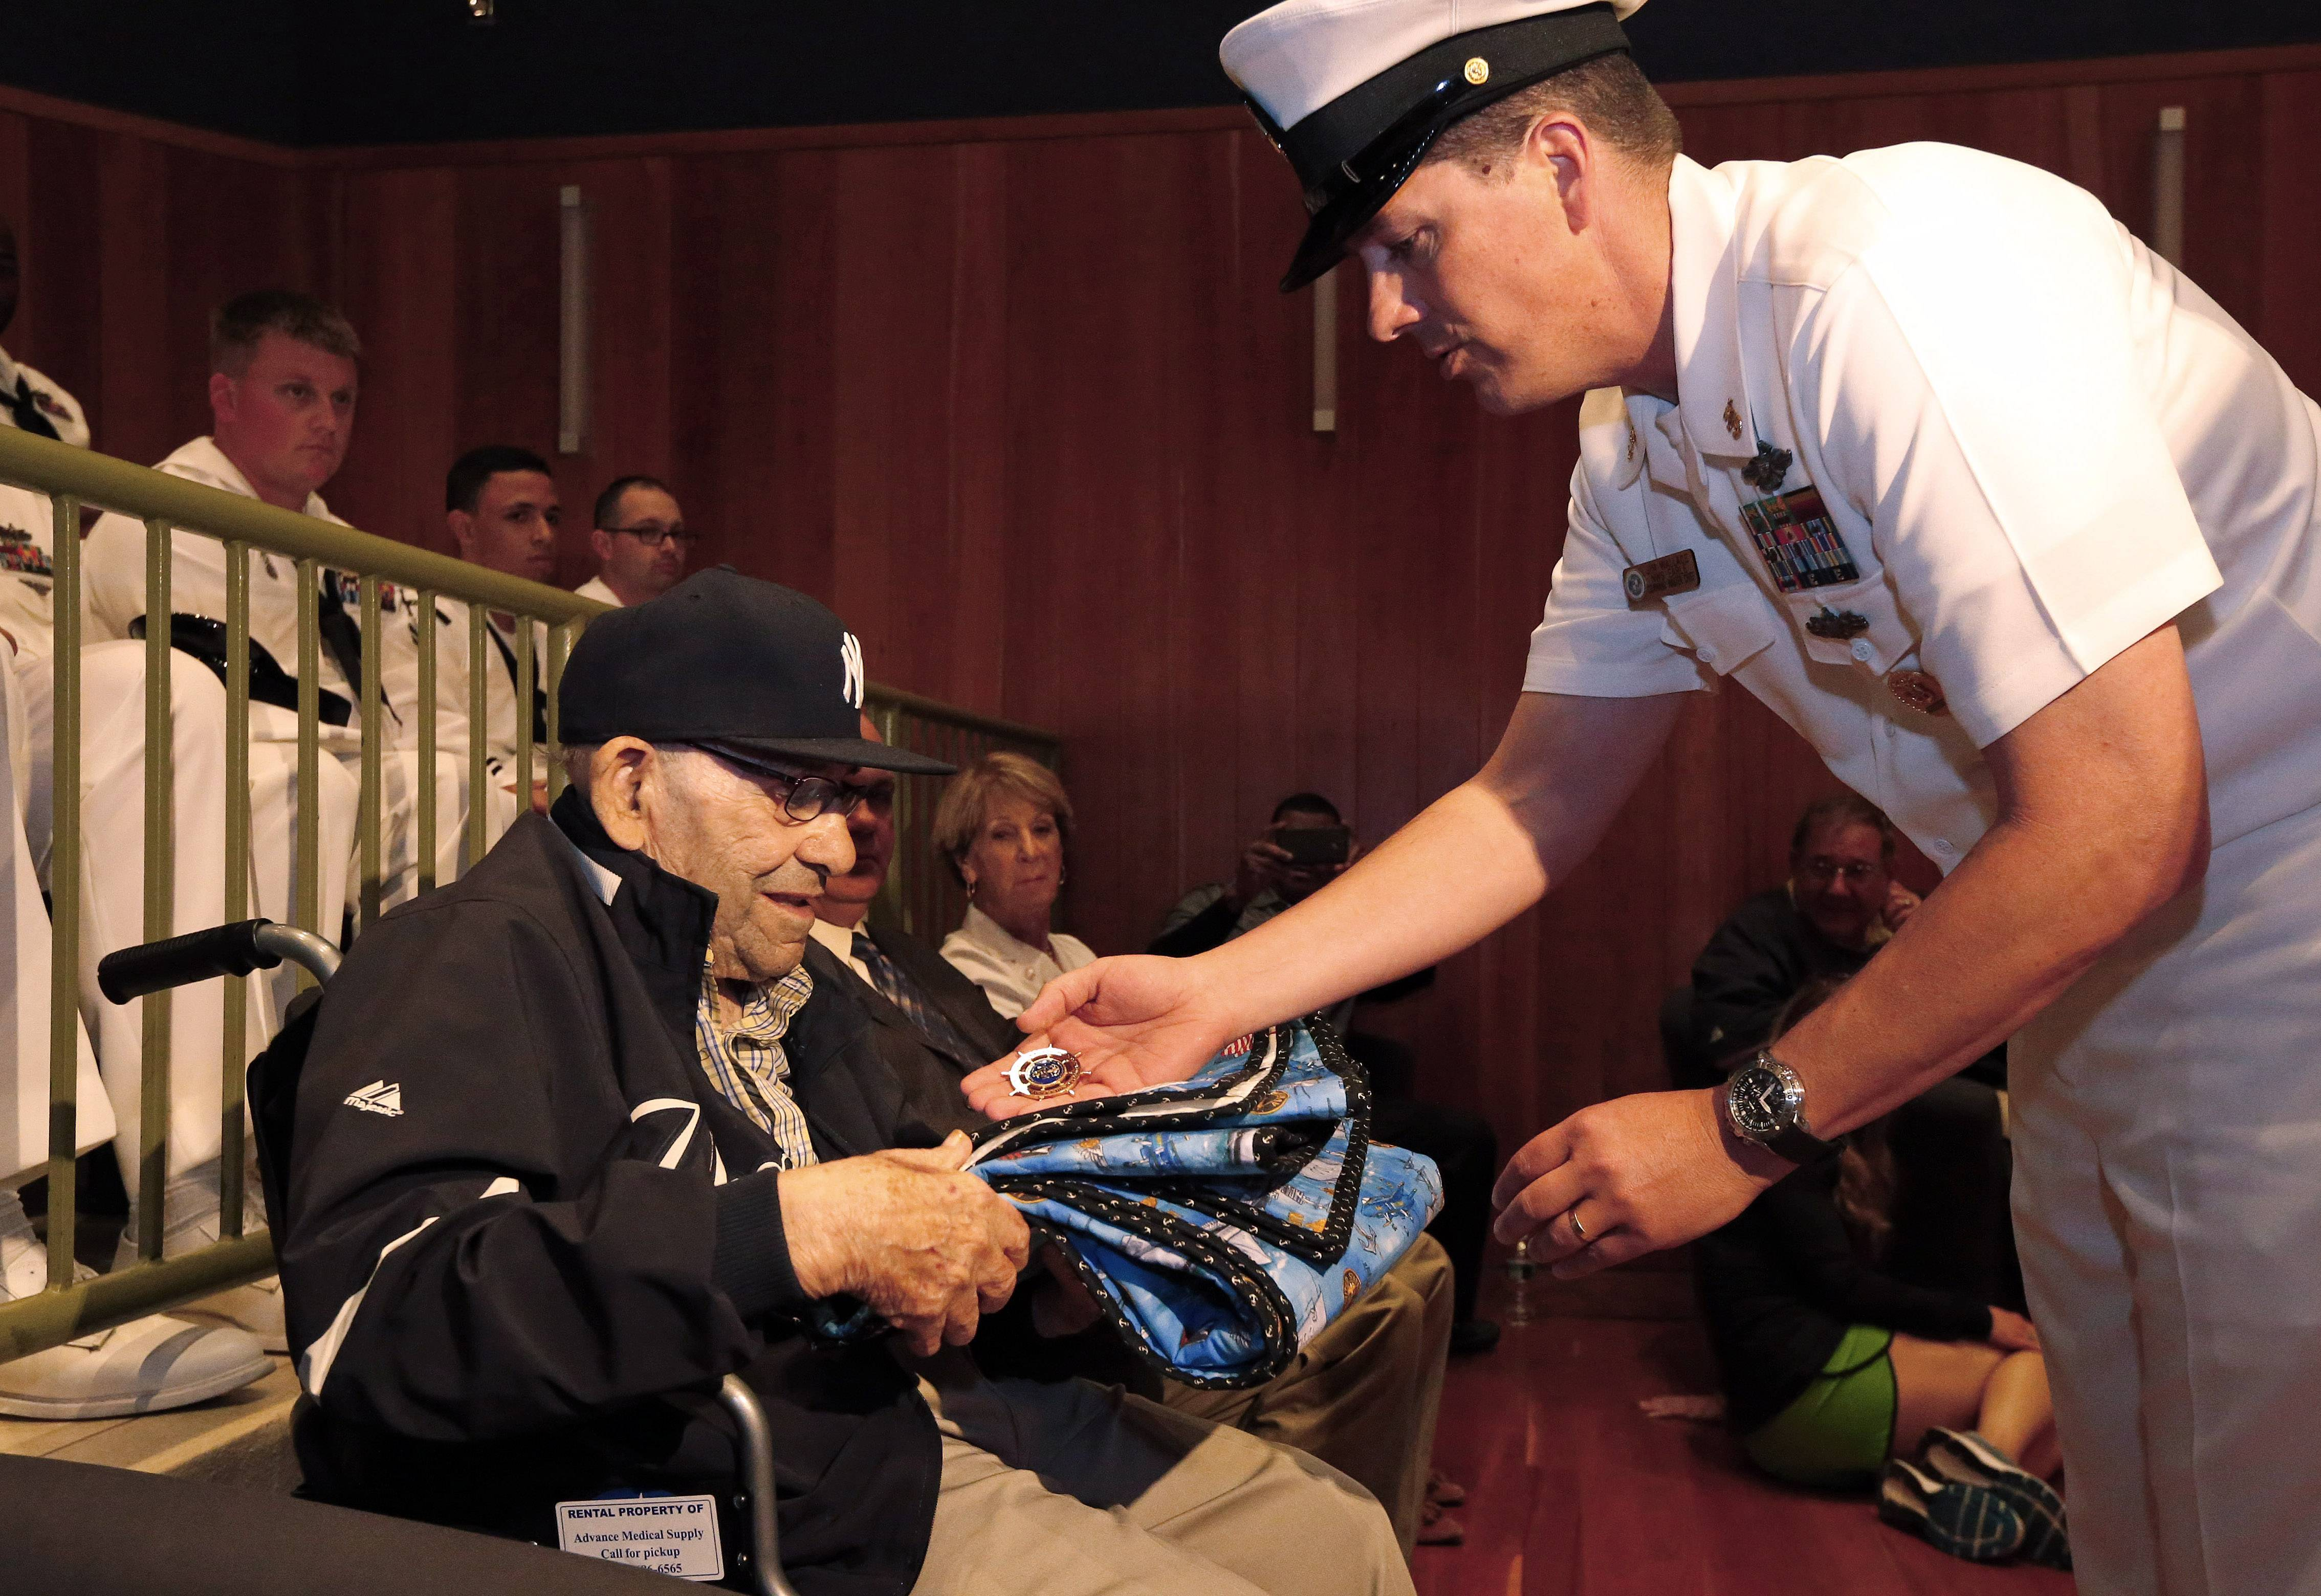 Baseball Hall of Famer Yogi Berra is presented with a quilt and a medal by Cmdr. Jim Wallace during a D-Day presentation at the Yogi Berra Museum in Montclair, N.J., Friday, June 6, 2014. Berra served in the navy 70 years ago as part of the D-Day invasion.